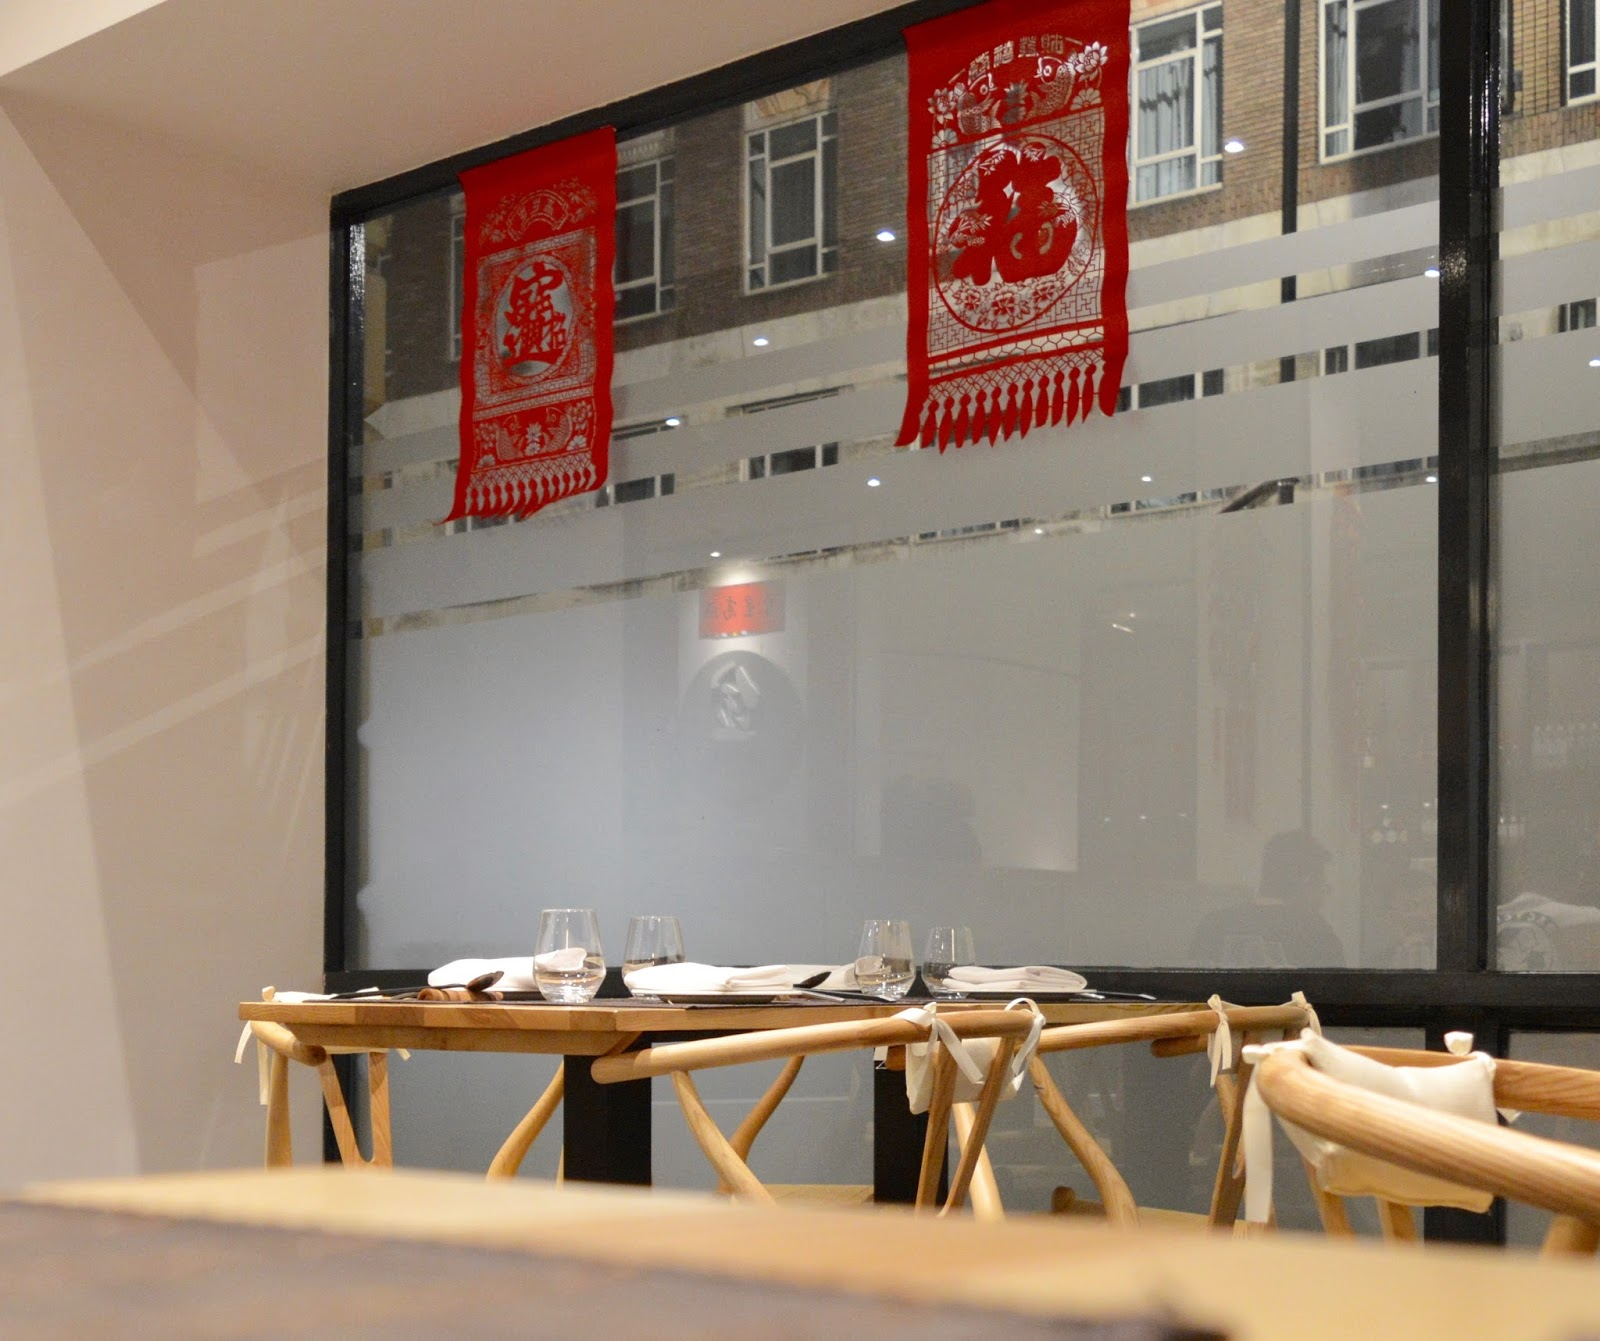 La Yuan Newcastle Menu Review | Tasty & Authentic Sichuan Cuisine  - restaurant interior